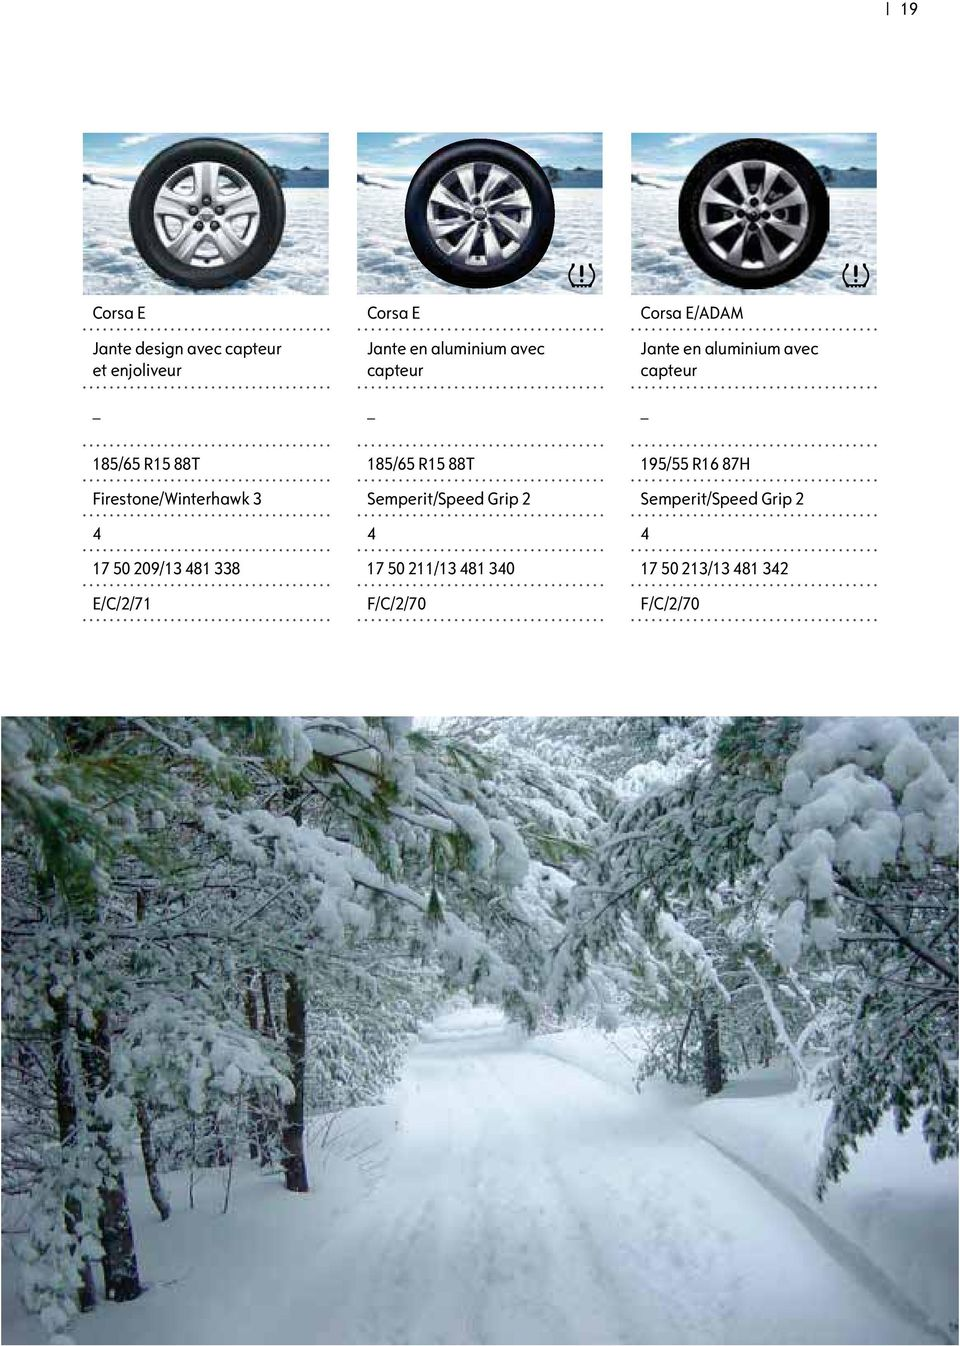 195/55 R16 87H Firestone/Winterhawk 3 Semperit/Speed Grip 2 Semperit/Speed Grip 2 4 4